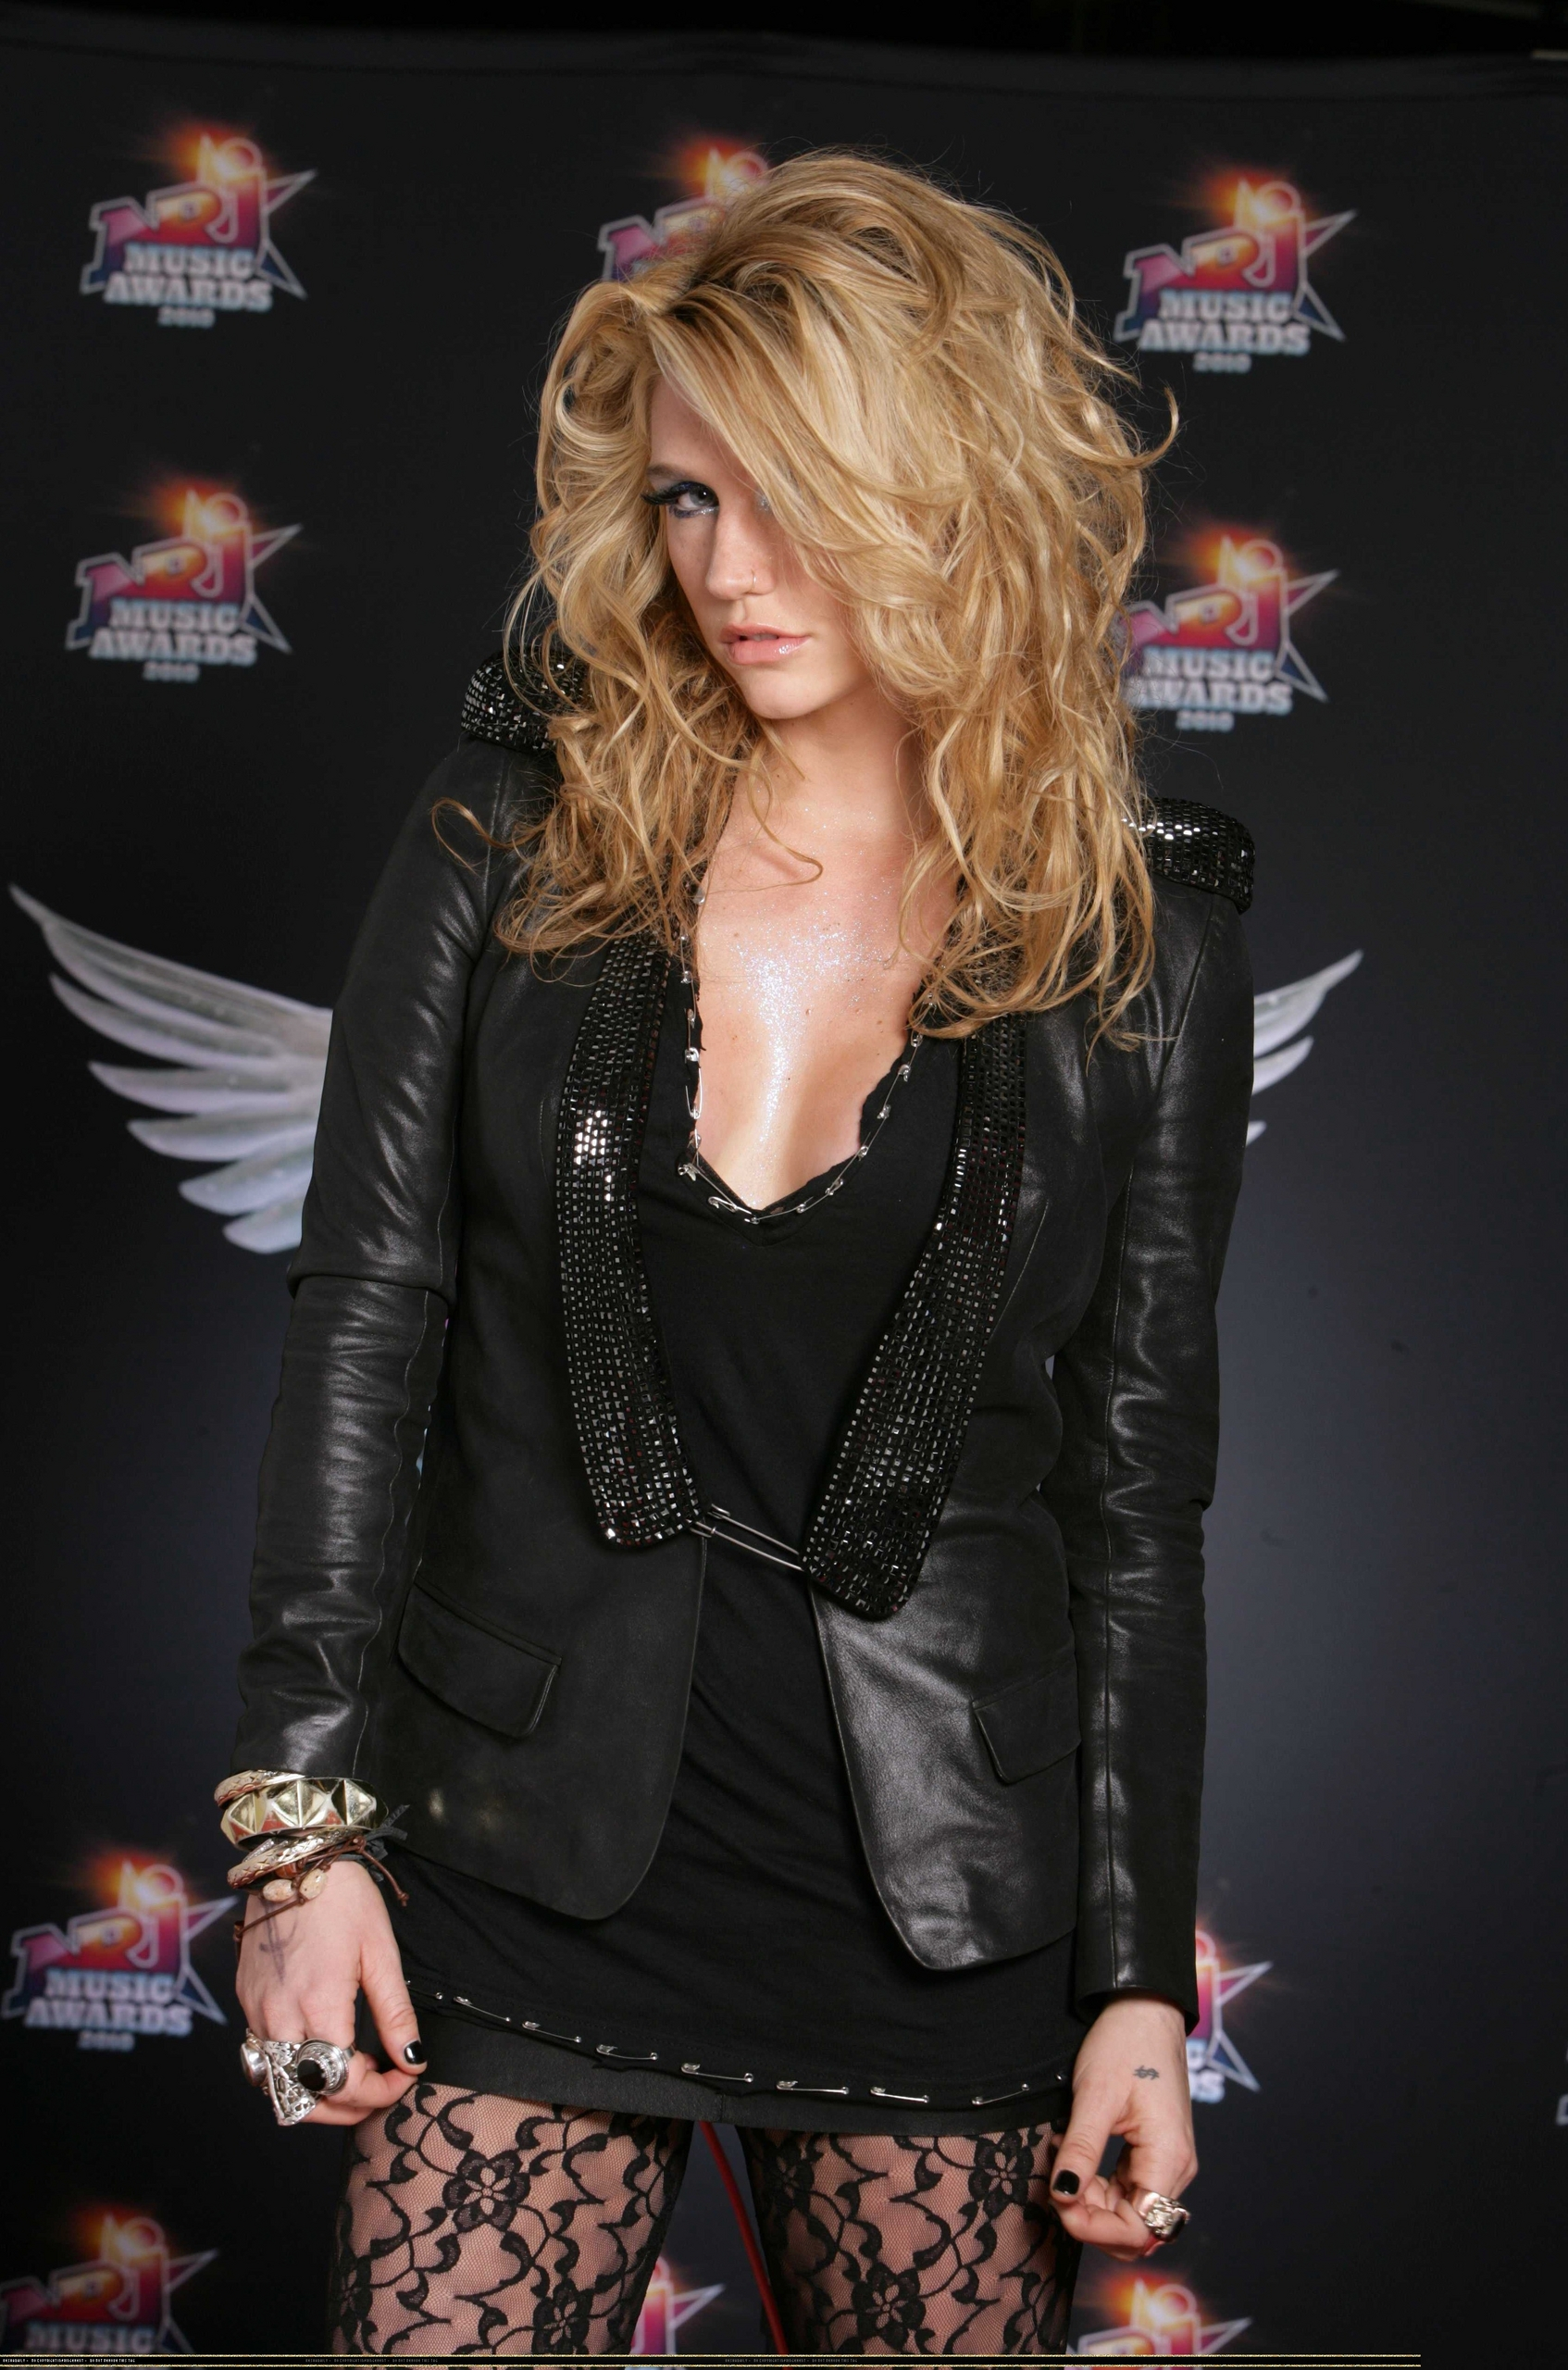 2010 NRJ muziek Awards Photocall *HQ*